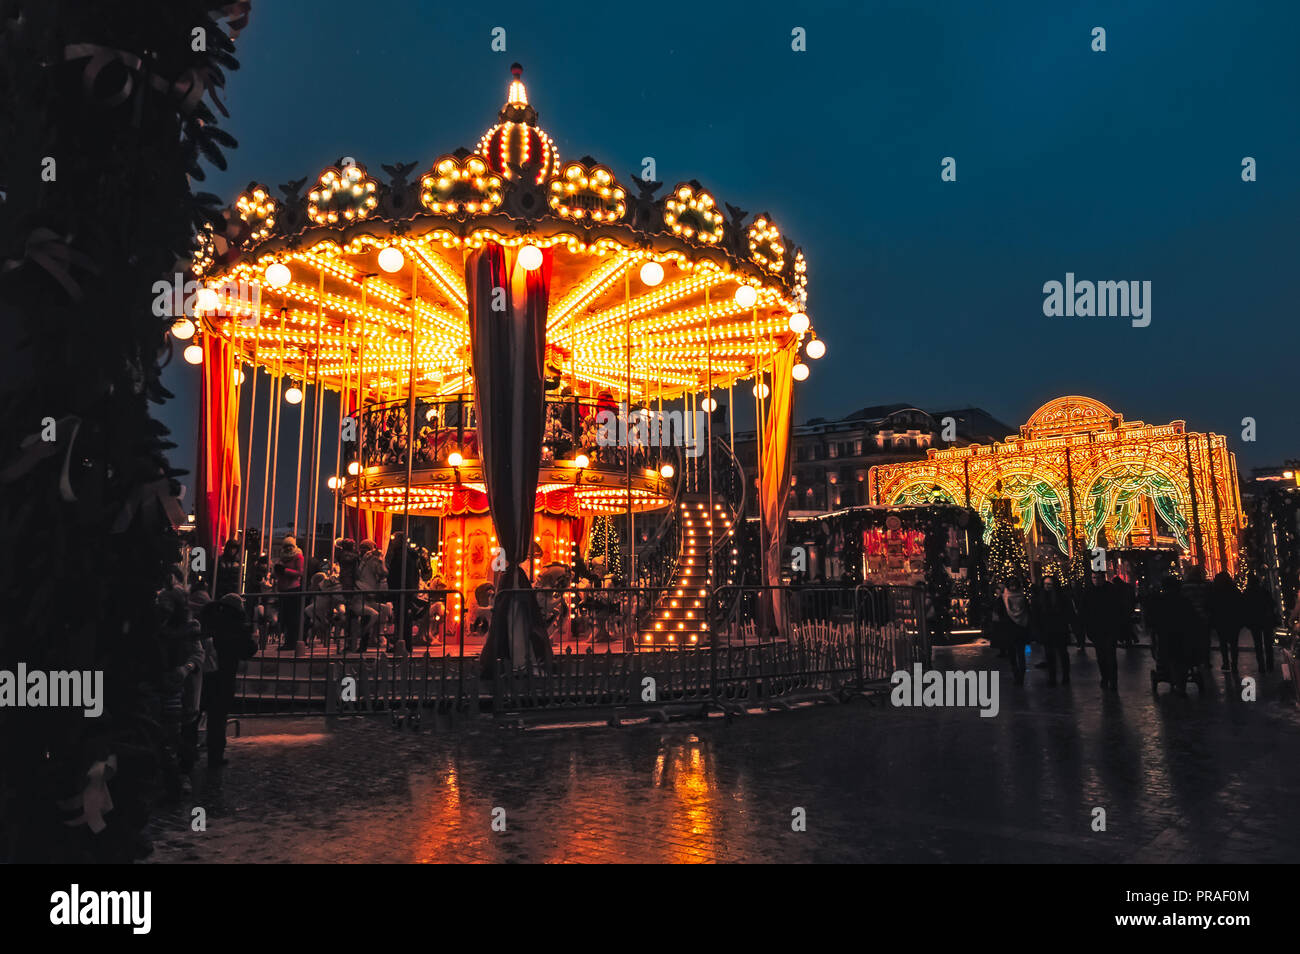 People on carousel near Red Square decorated and arranged for Christmas New Year. Christmas fair. Luminous roundabout rotates with adults and children - Stock Image